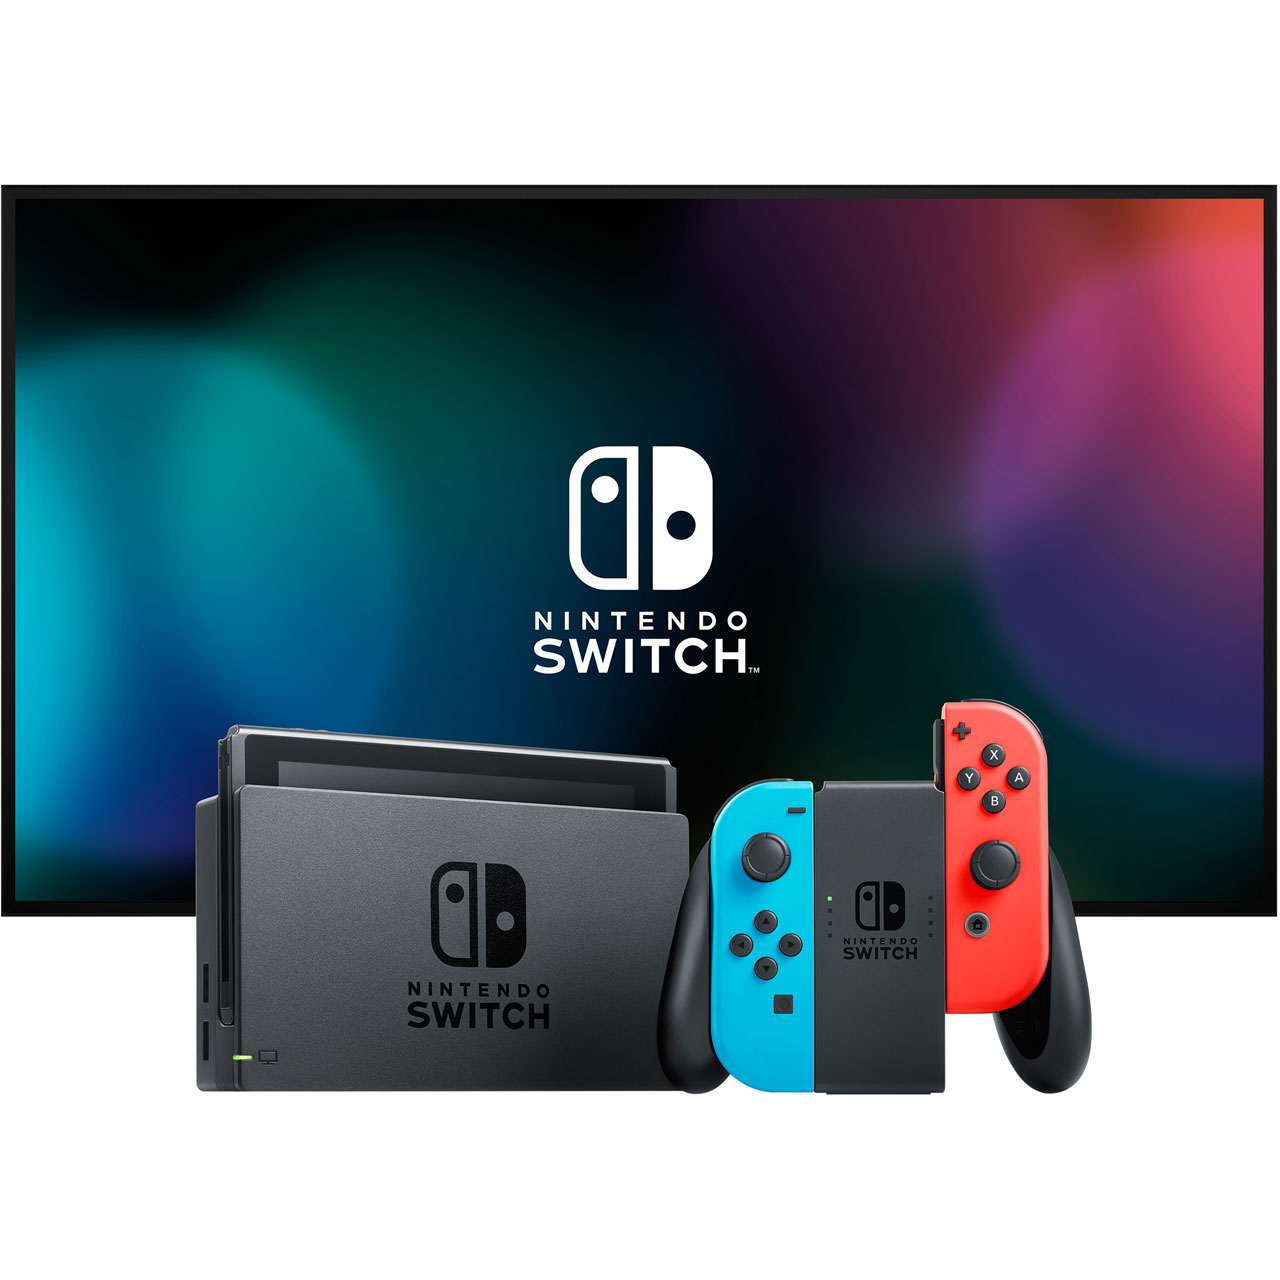 Direct Tv Internet Bundle >> Nintendo Nintendo Switch Neon Bundle 32GB 5027669552416 | eBay